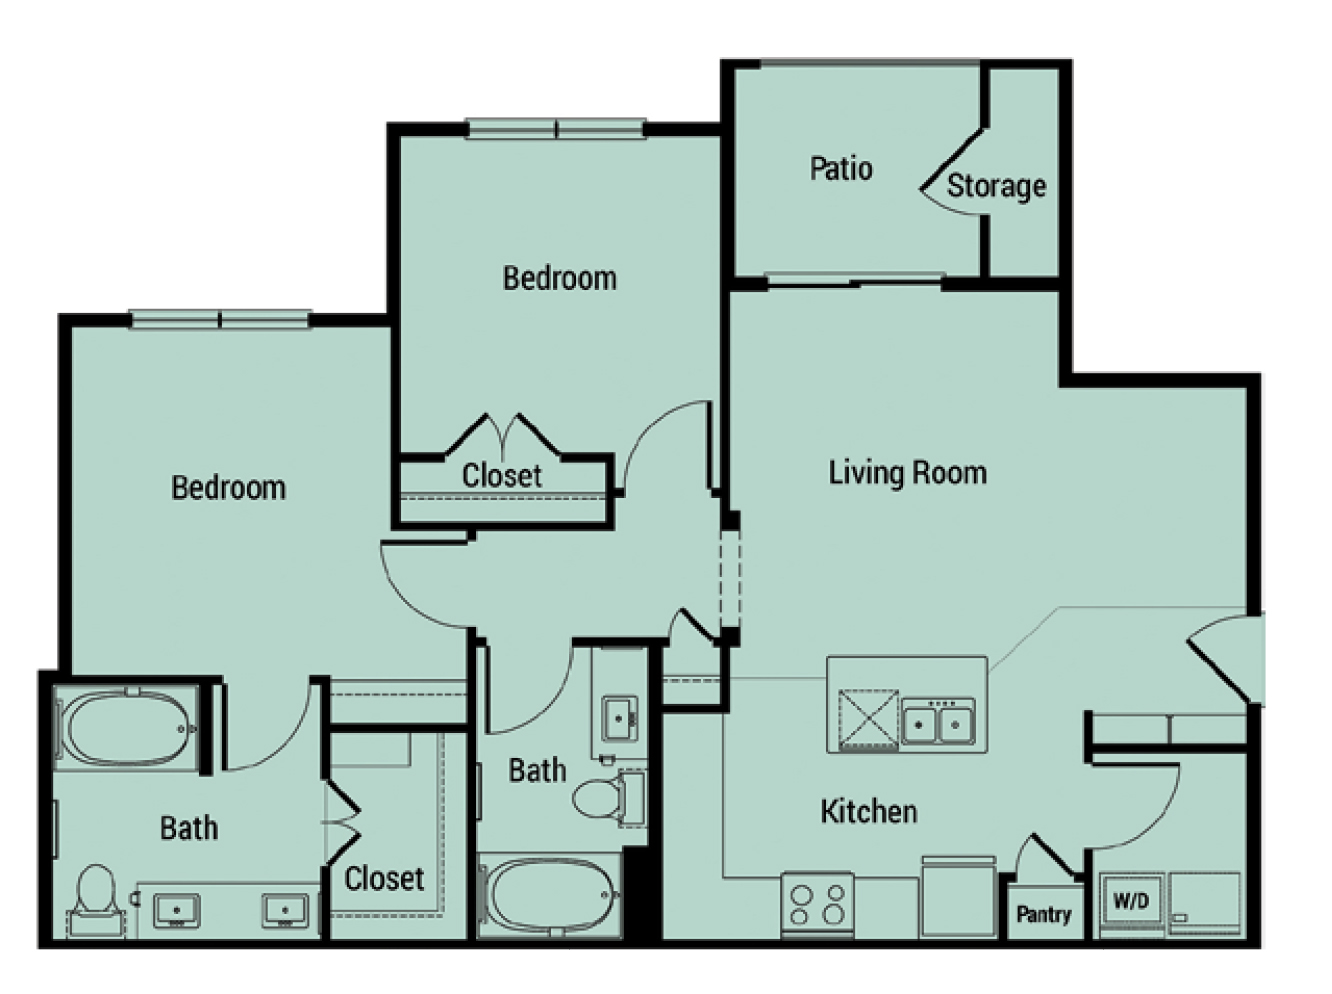 Floorplan - B1 Los Altos image